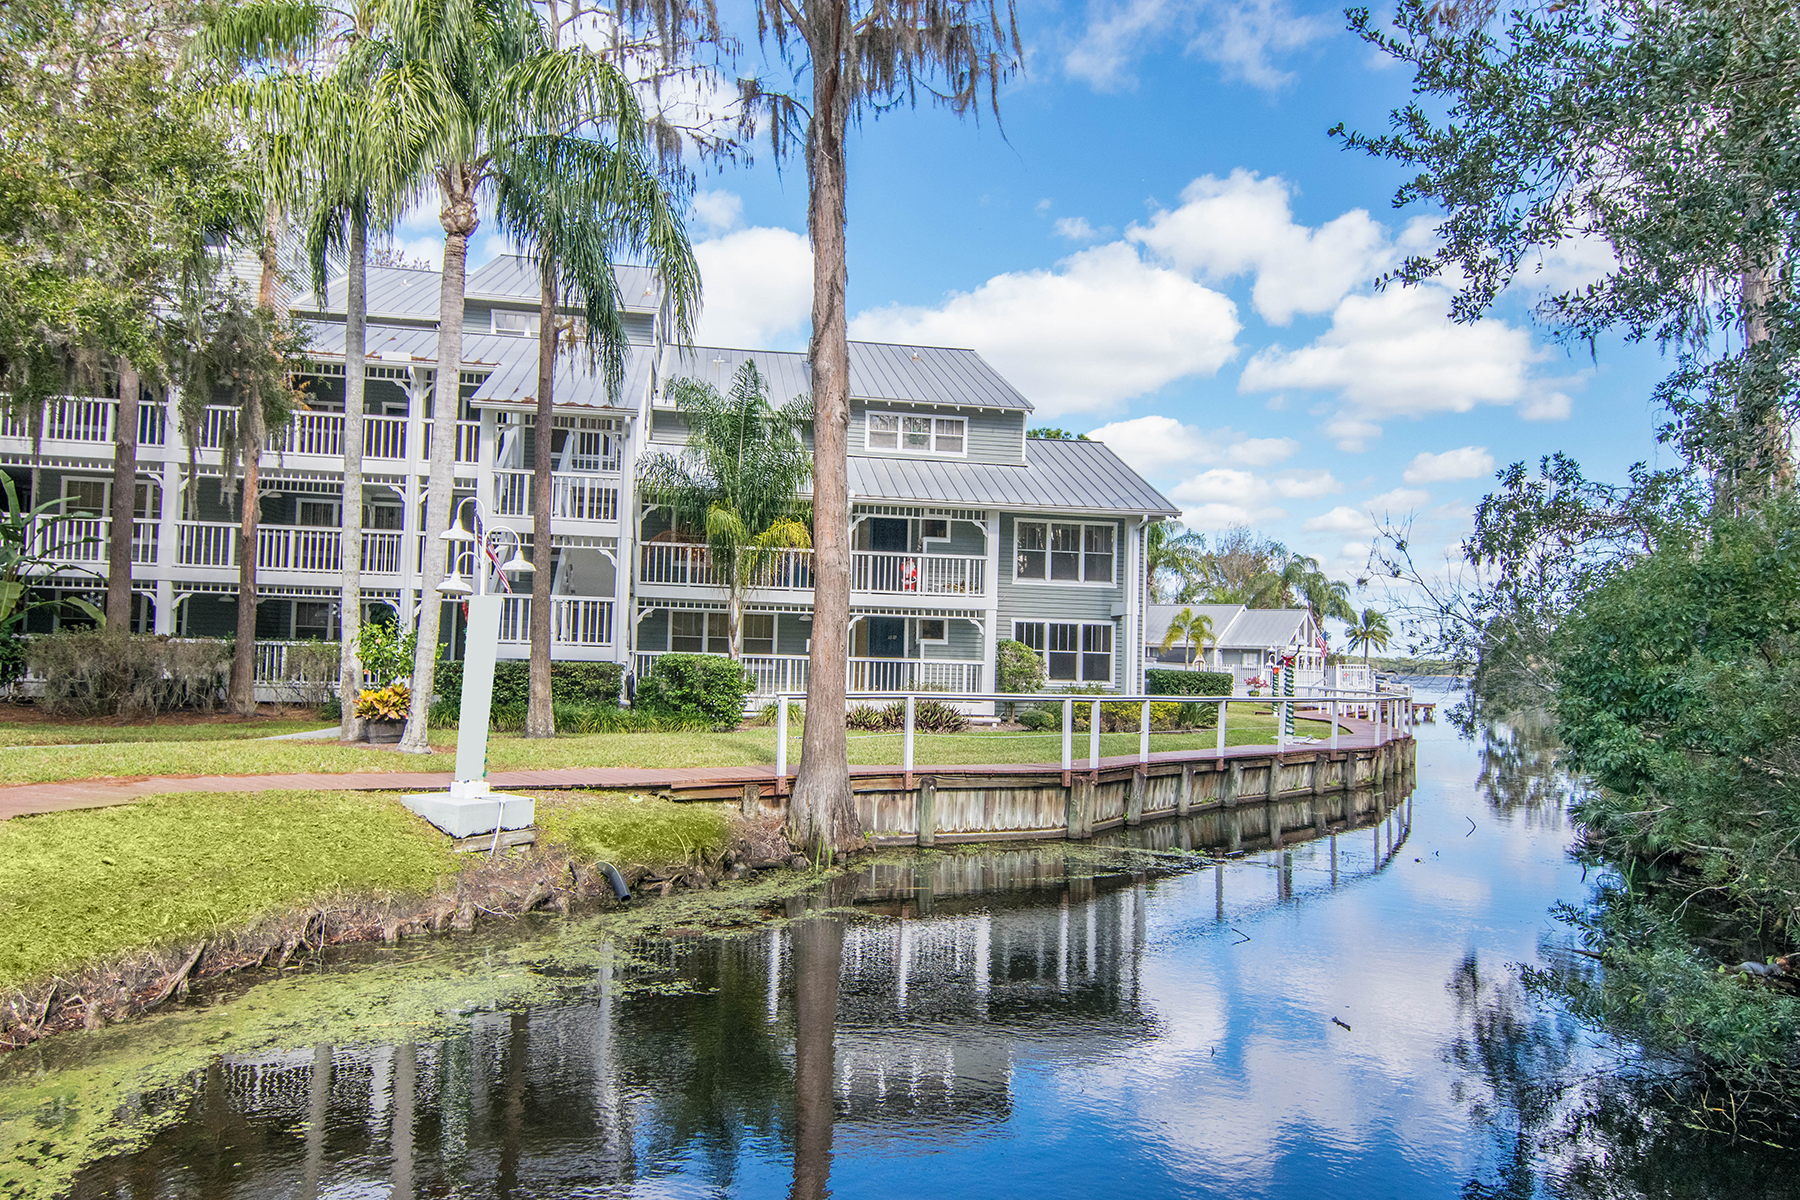 Condominium for Sale at PALM HARBOR 2533 Dolly Bay Dr 304, Palm Harbor, Florida 34684 United States